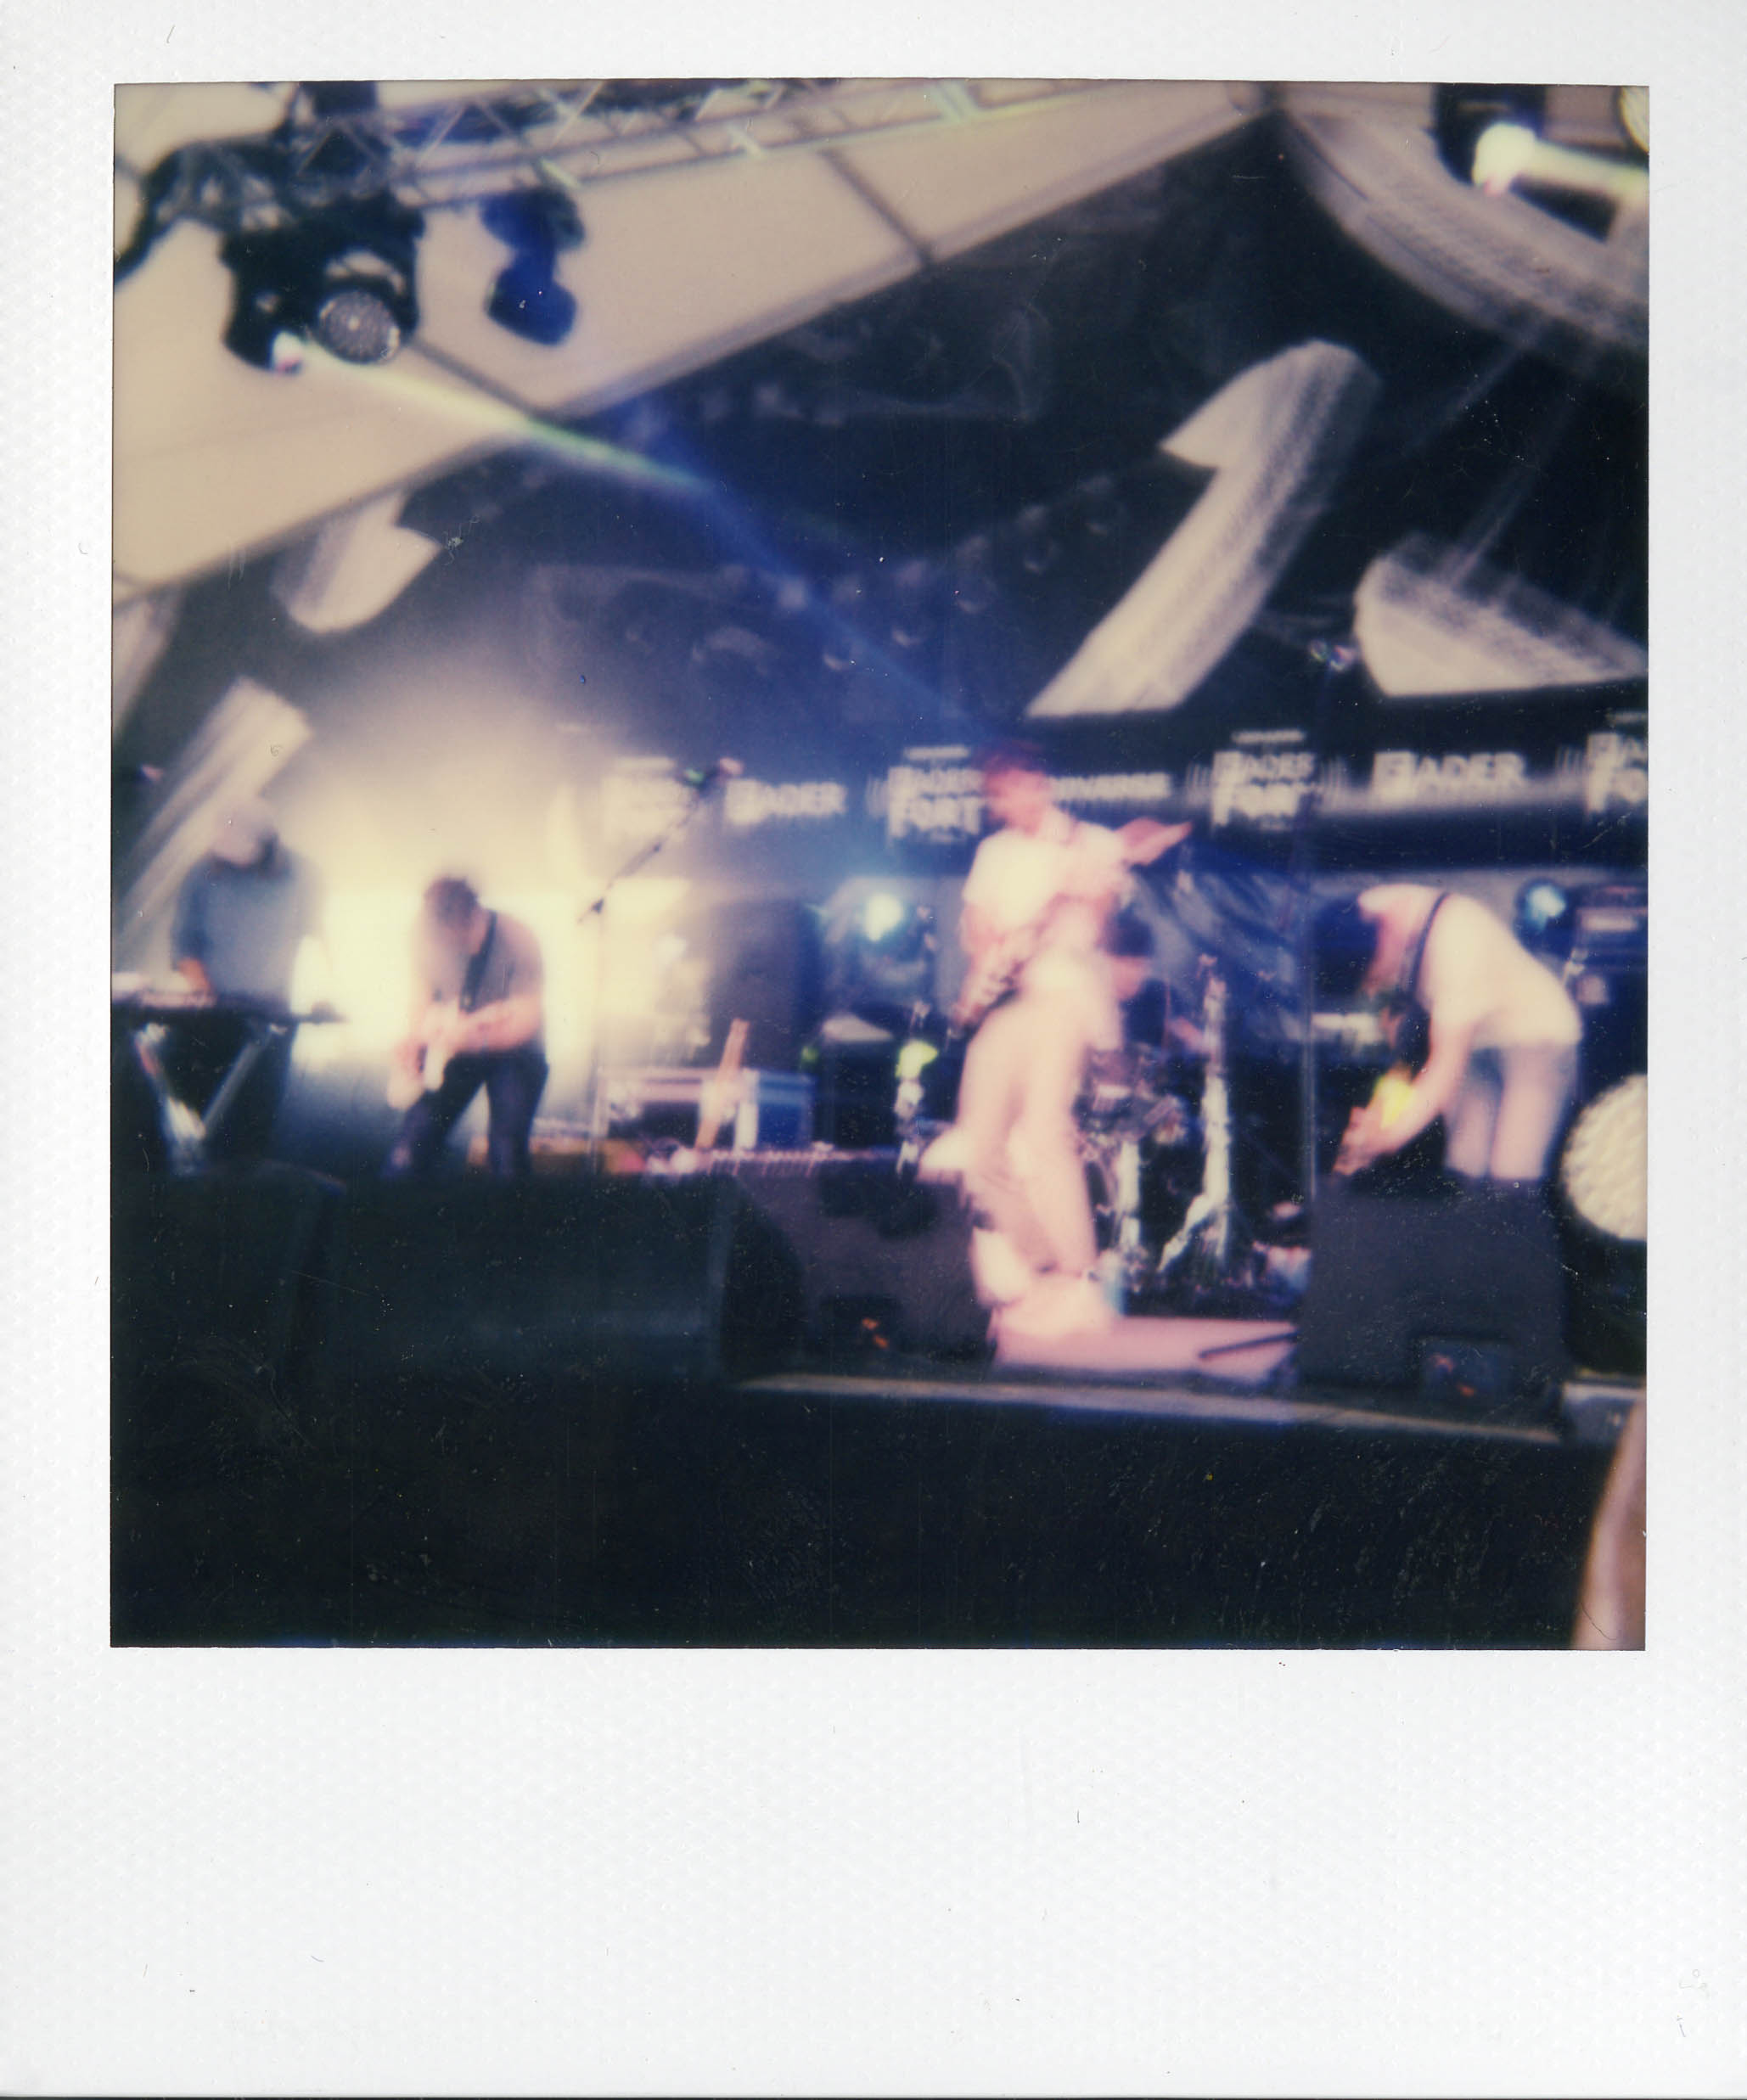 Day Wave  on stage at Fader Fort,  Photo: Rachel Cabitt